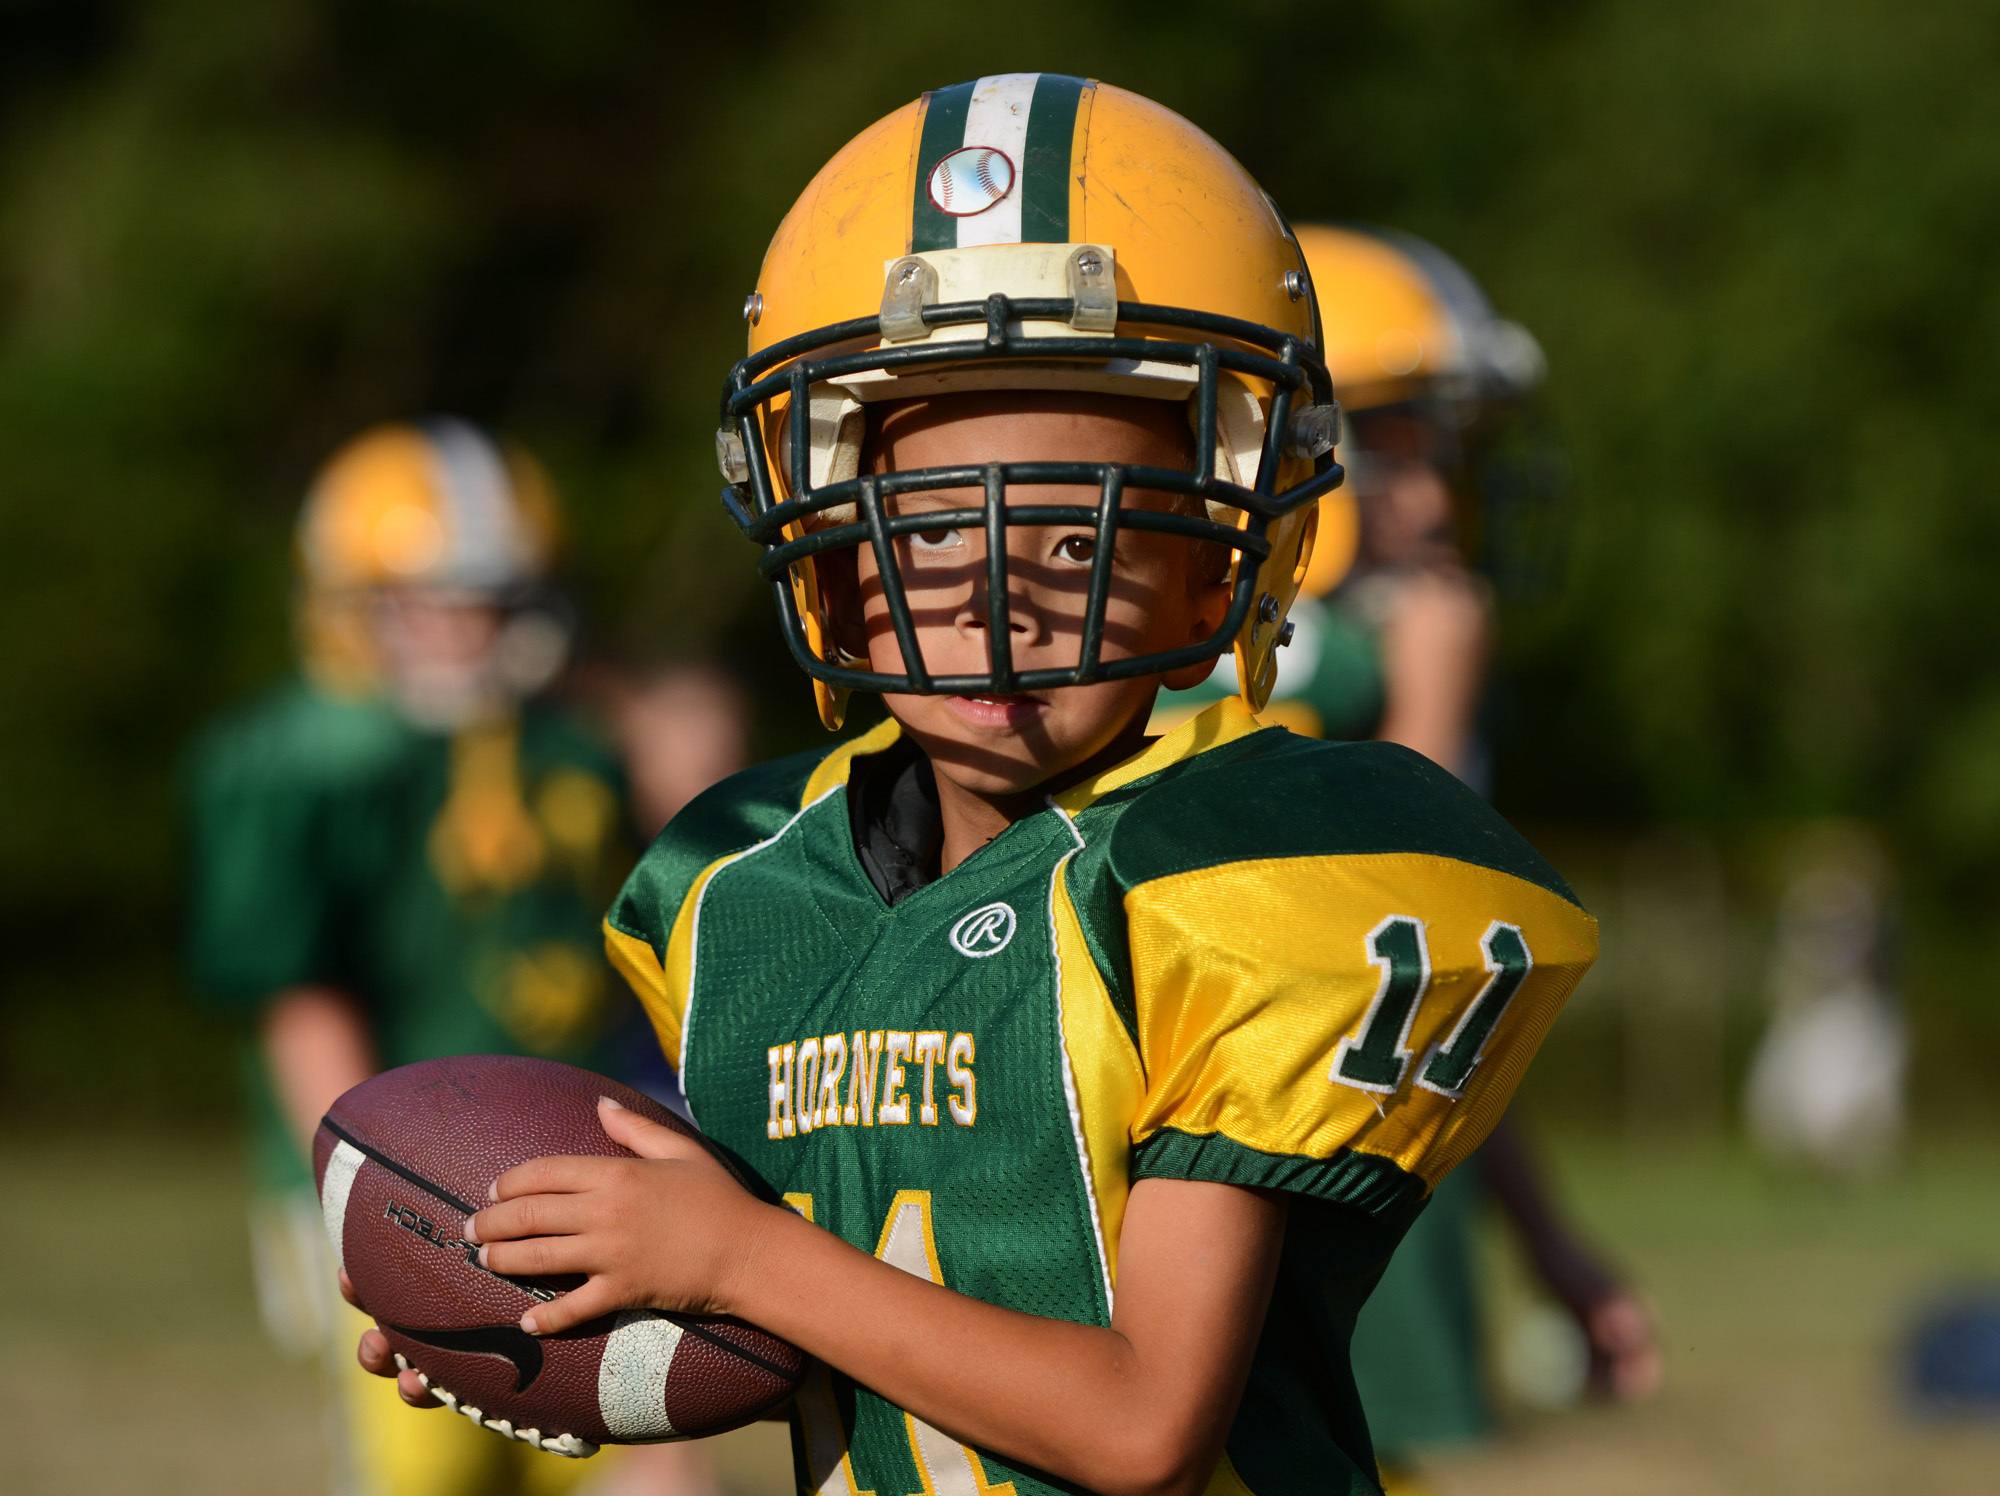 "6-year old Anton ""Tubby"" Clayborn Jr. prepares to throw a pass during football practice at Bushman Stadium in Harrison Township on Tuesday, Sept. 15, 2015. On Saturday, the Highland Hornets youth football team arranged for Anton to make a touchdown against the Butler Knights. Anton has a rare brain disorder that has required many surgeries and is mostly on the sidelines as he cannot be tackled."